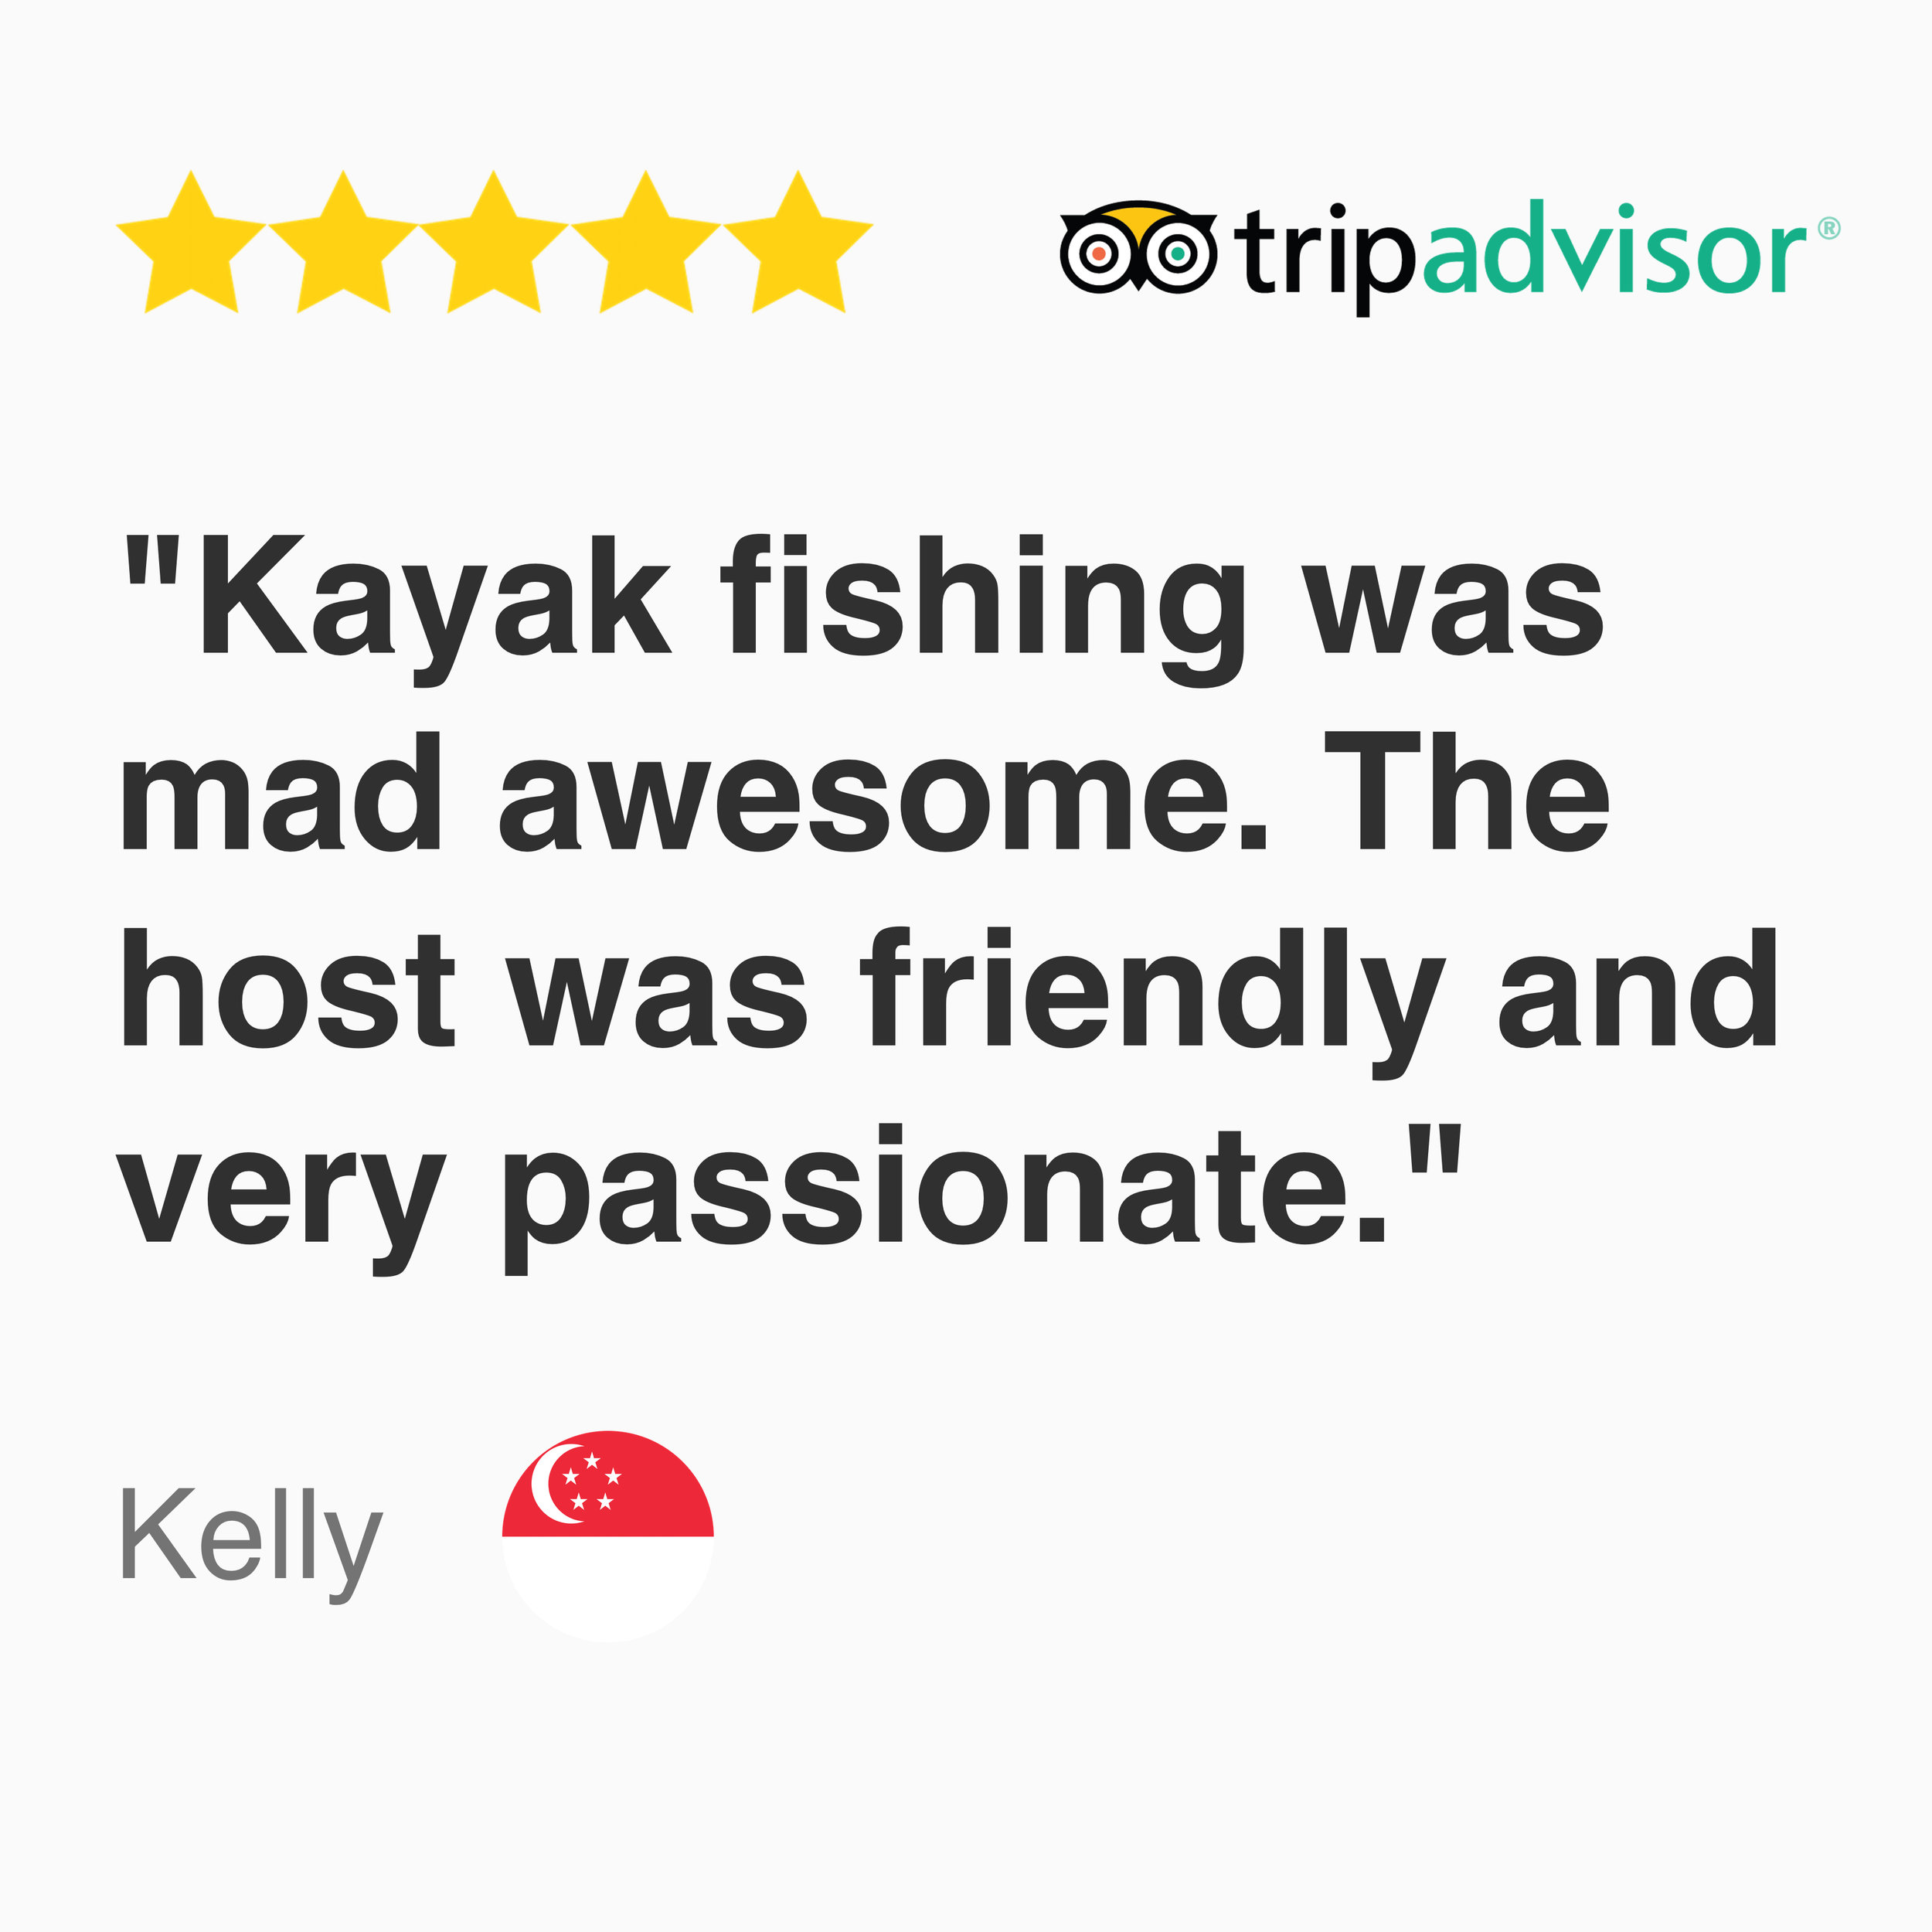 5 star Google Review for kayak fishing 'island hopper' tour: Kayak fishing was mad awesome. The host was friendly and very passionate